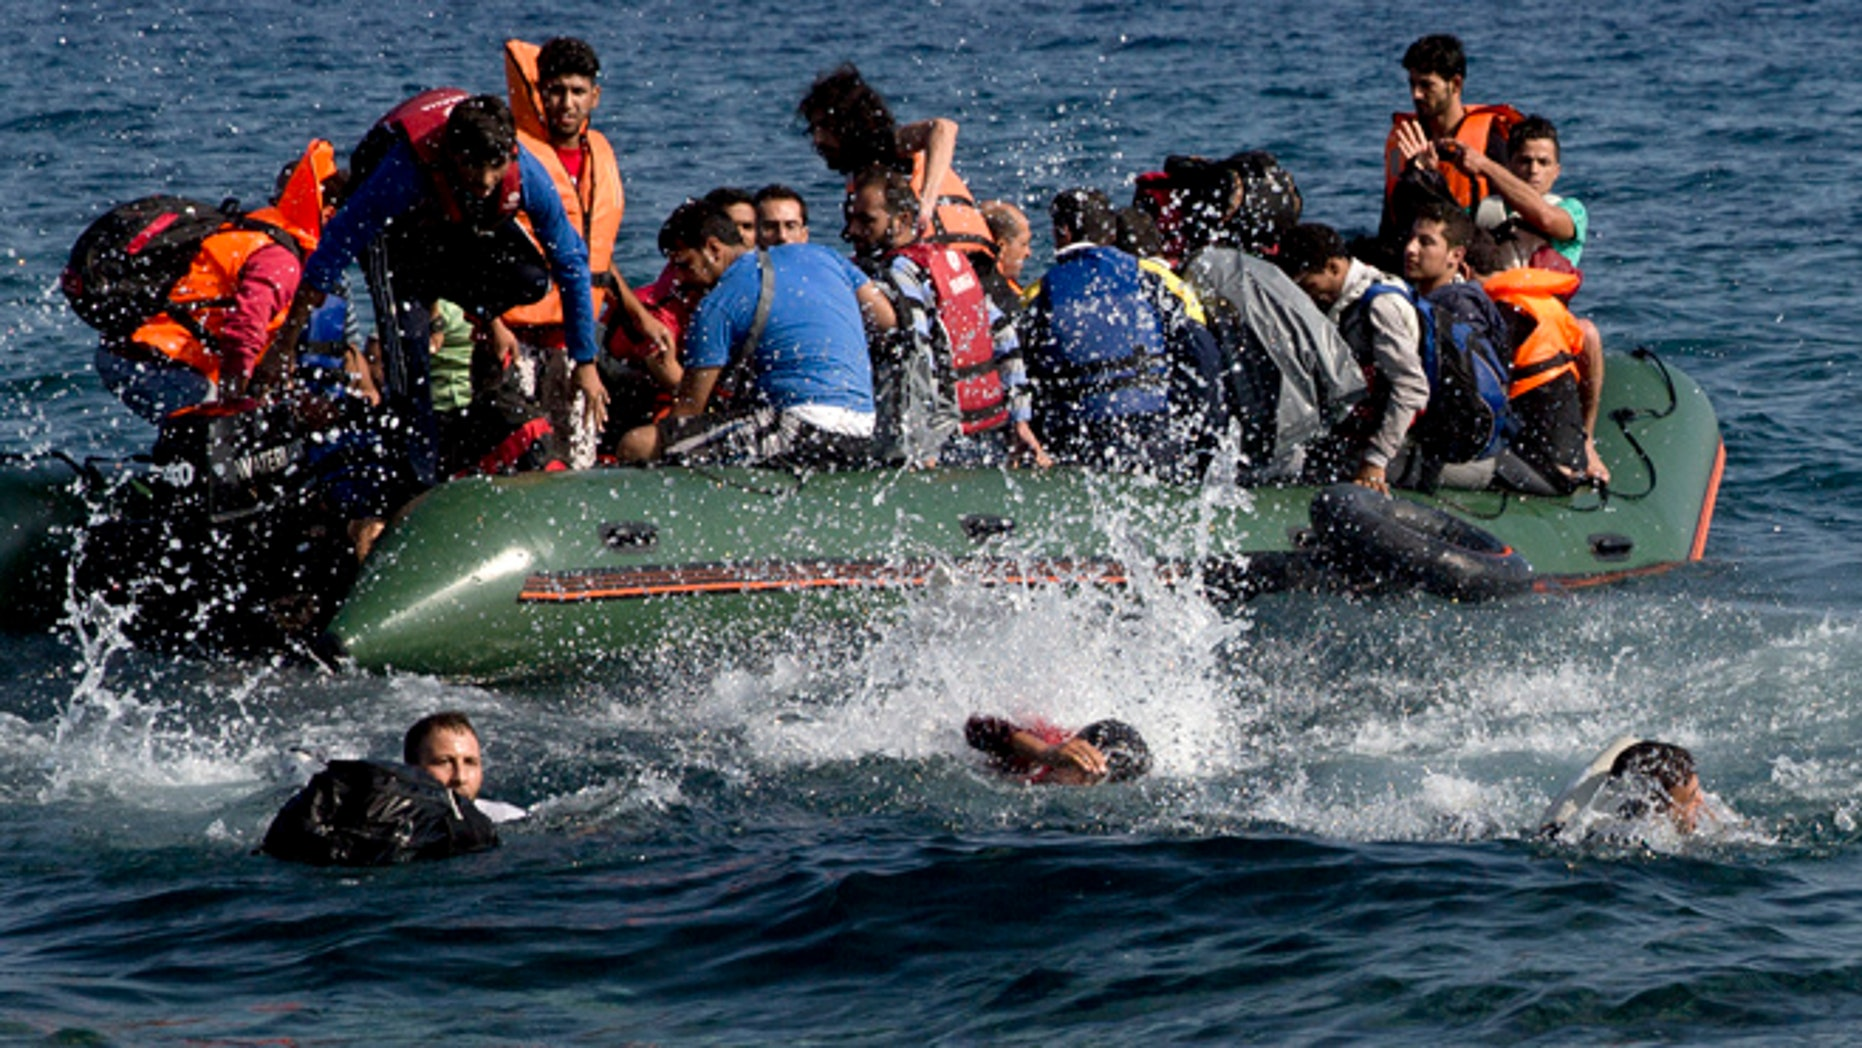 Sept. 20, 2015: Refugees whose boat stalled at sea while crossing from Turkey to Greece swim to approach the shore of the island of Lesbos, Greece.